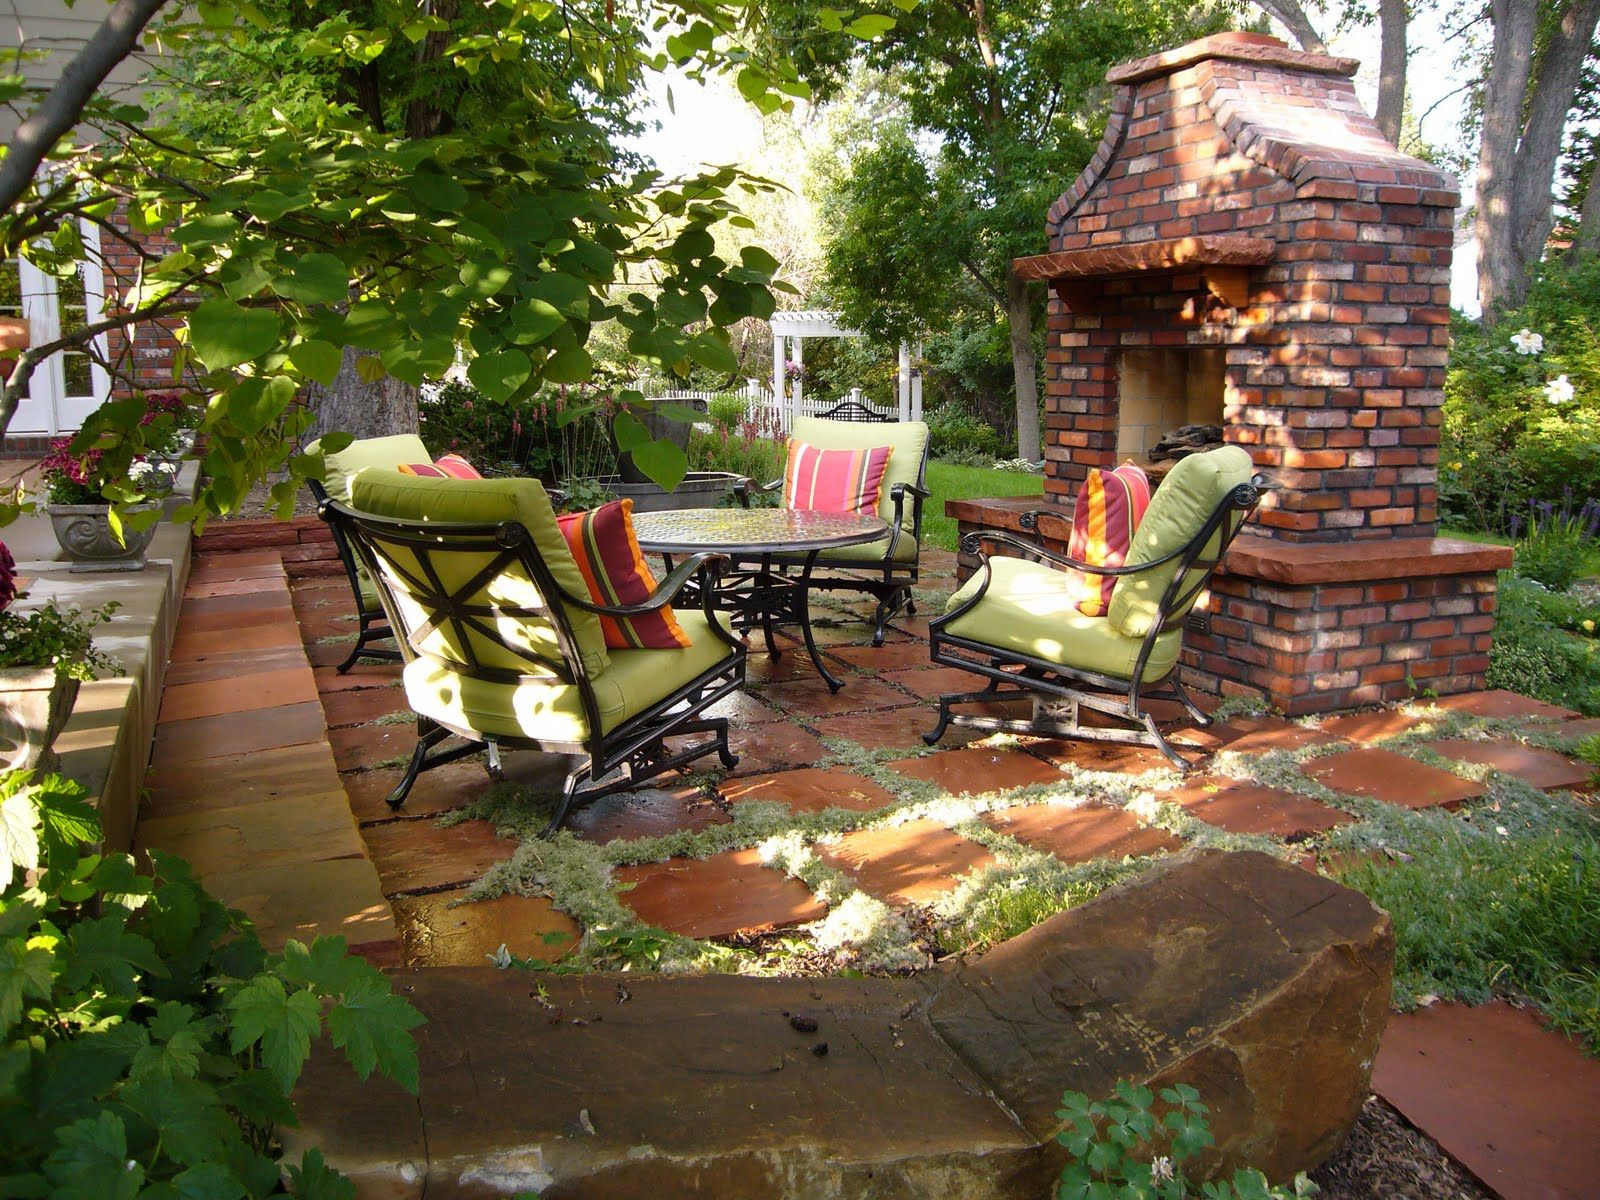 Backyard Patio Ideas for Making the Outdoor More ... on Outdoor Deck Patio Ideas id=66136